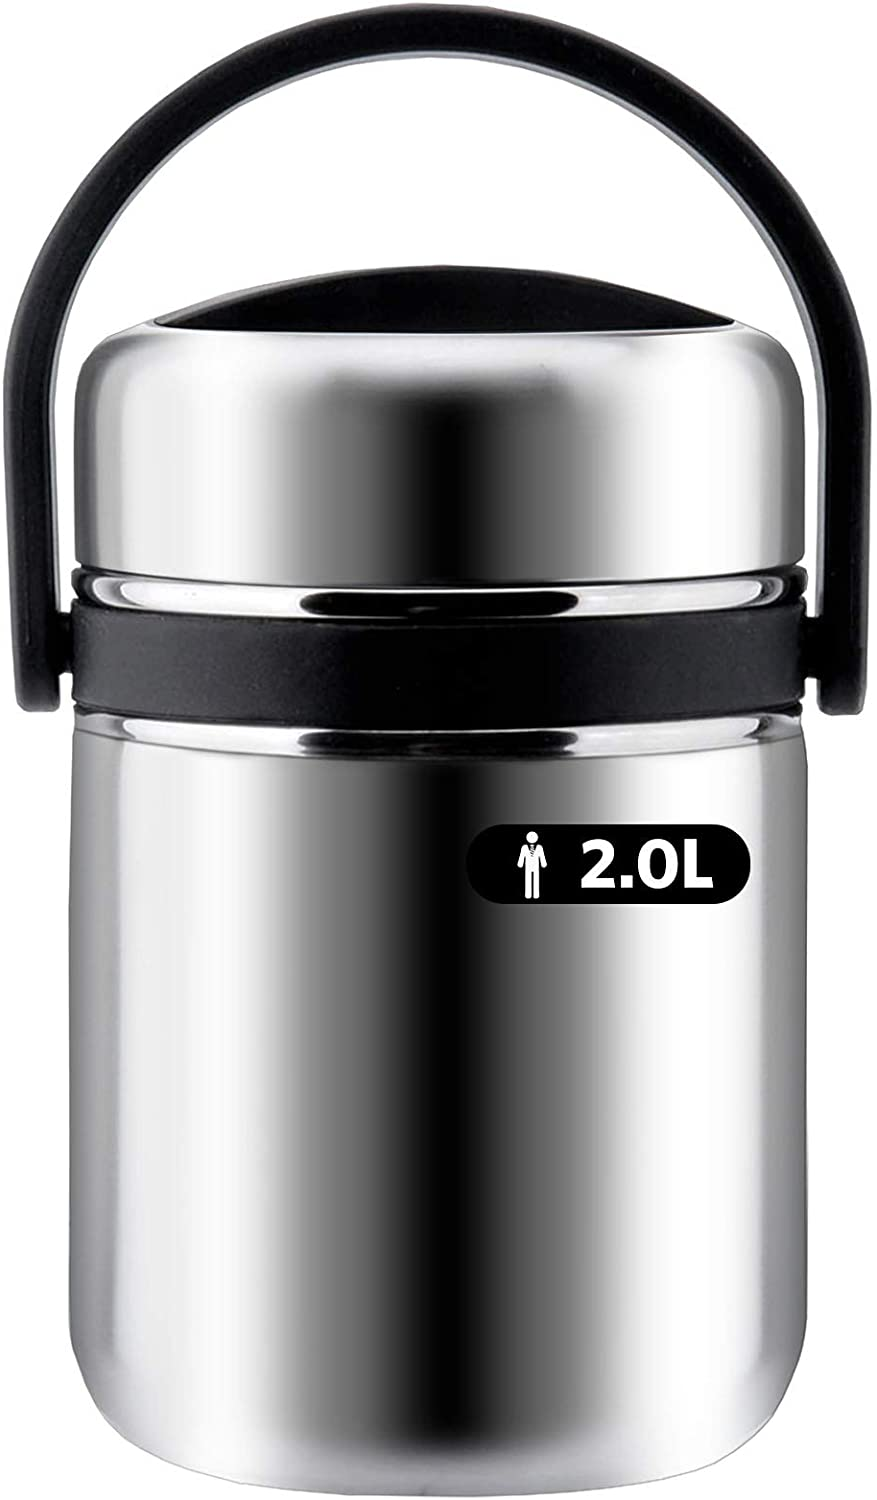 Soup Thermos Wide Mouth,3 Tier Food Thermos Jar, Leakproof Vacuum Lunch Box Food Carrier 304 Stainless Steel Insulated Thermos Food Container Storage Carrier, Keep Warm 6-8 hours (2.0L-63 Oz, Black)